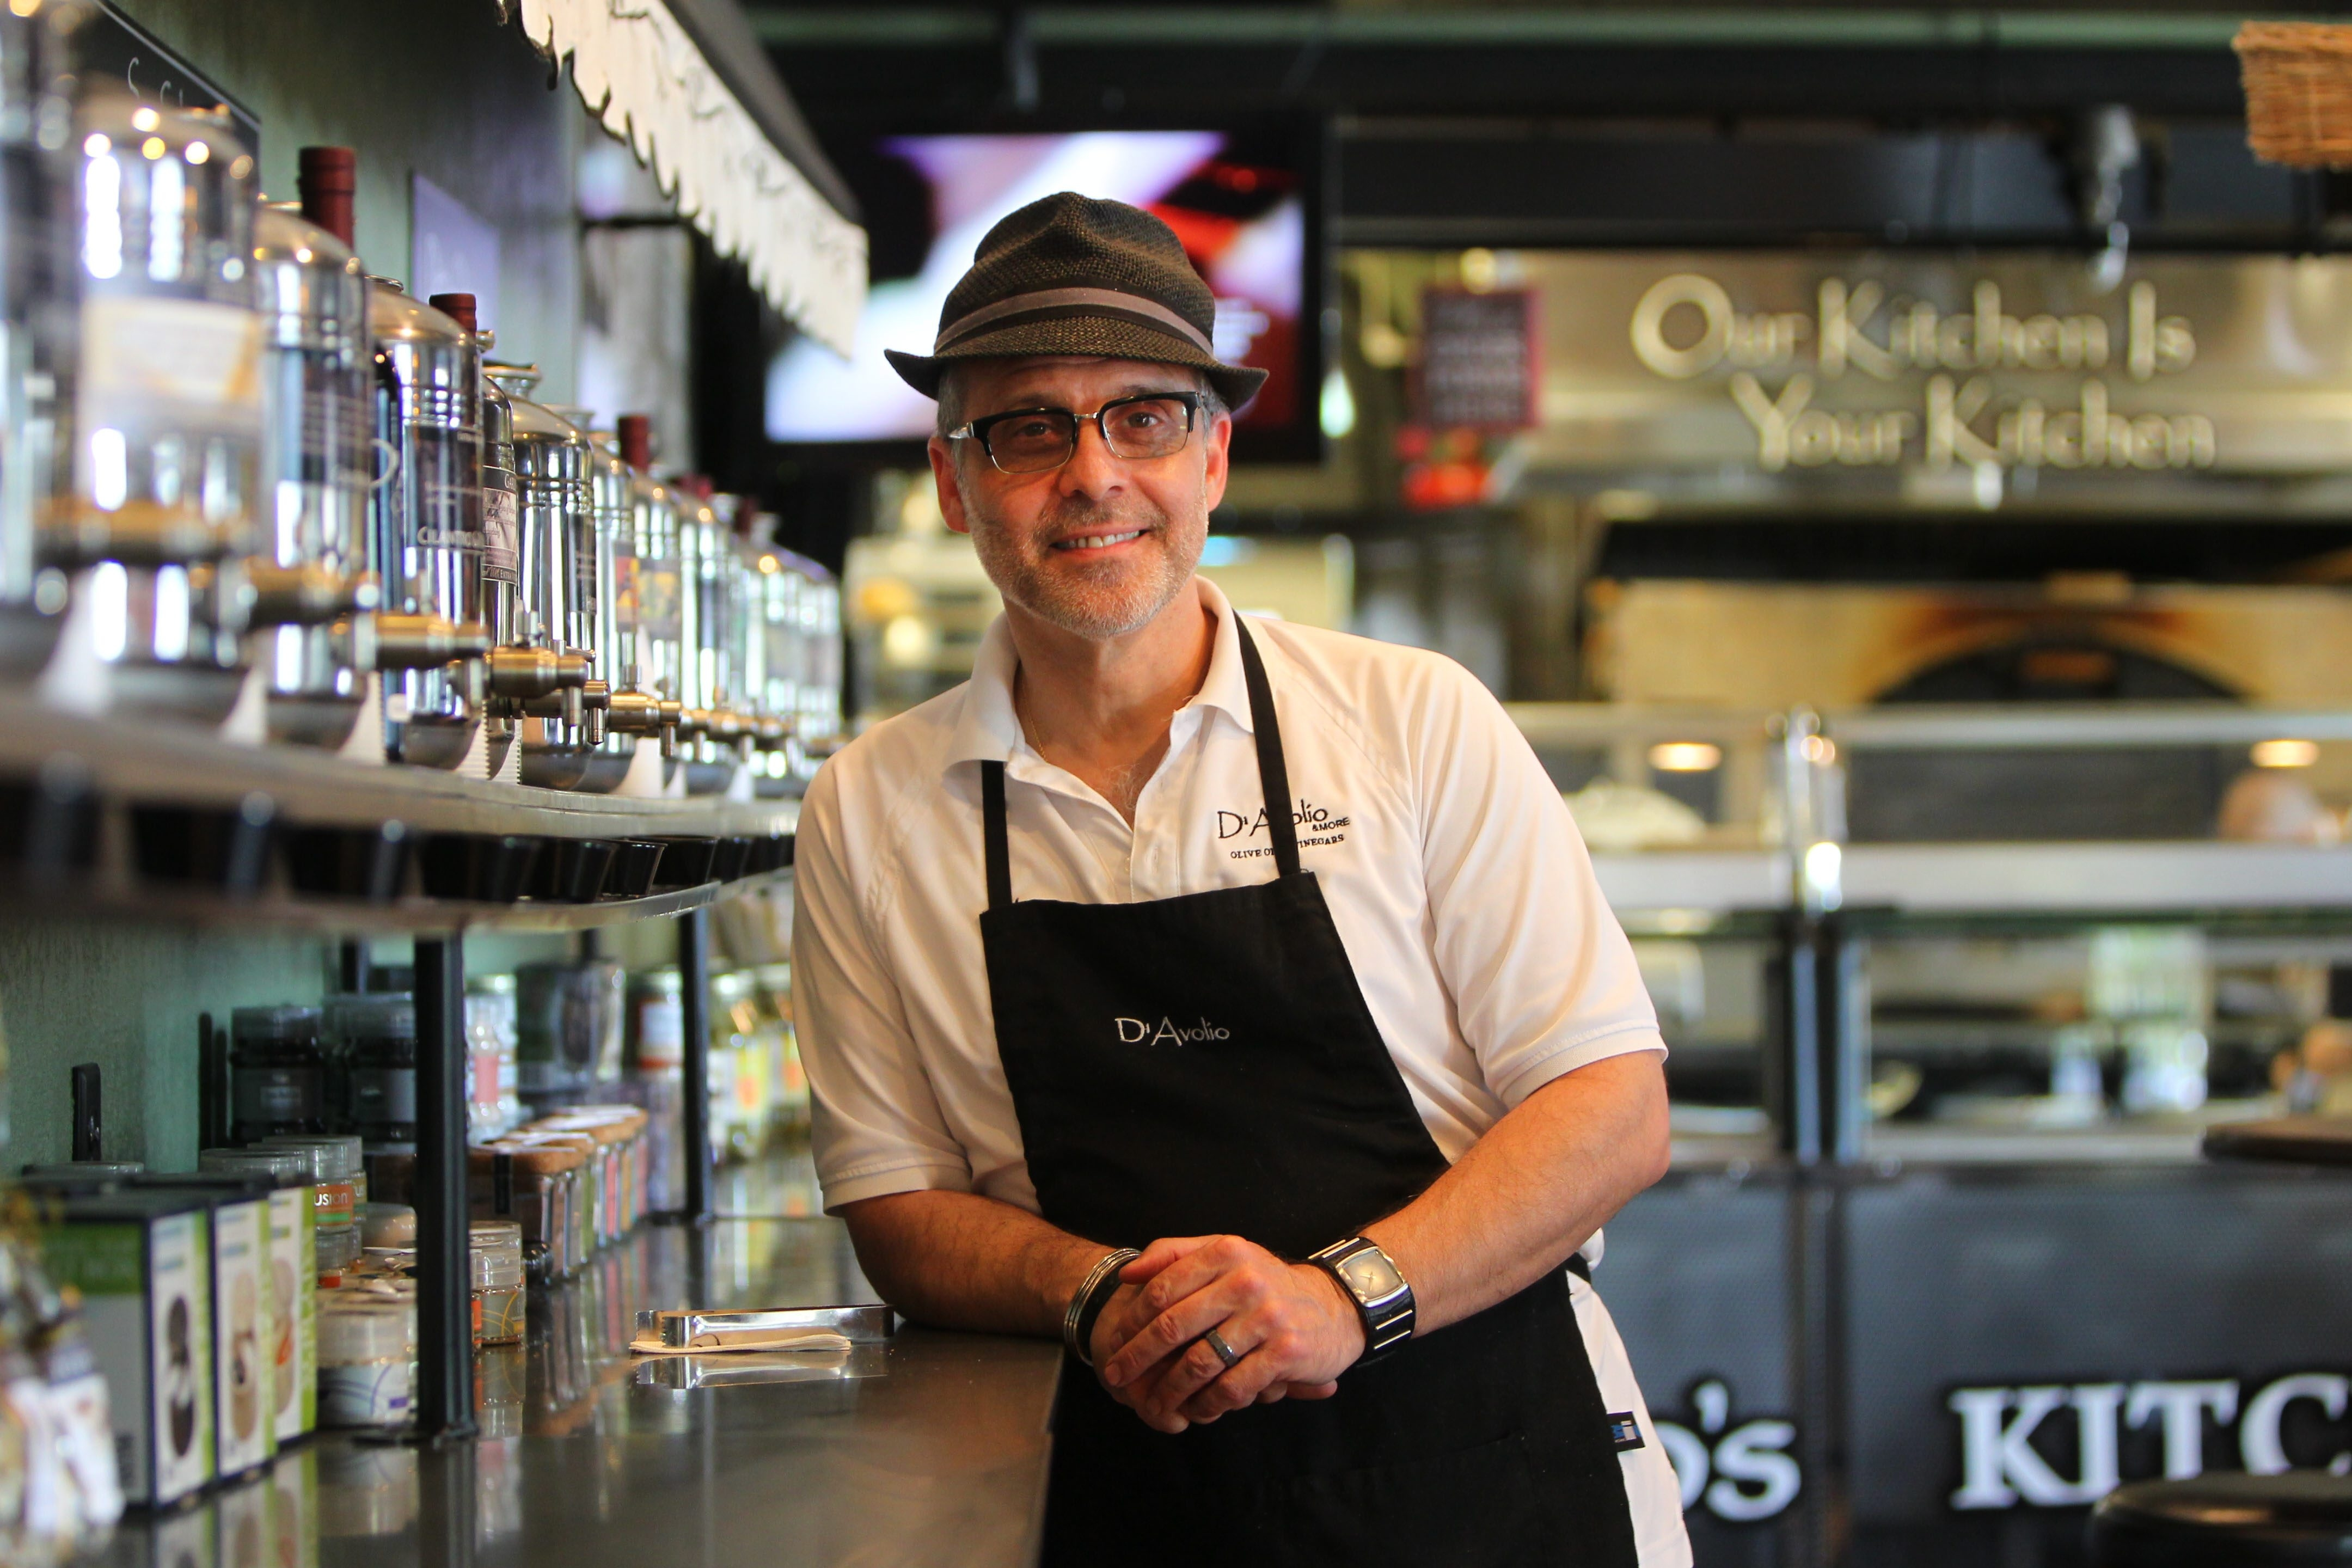 D'Avolio owner Dan Gagliardo says he doesn't eat a lot of bread anymore.